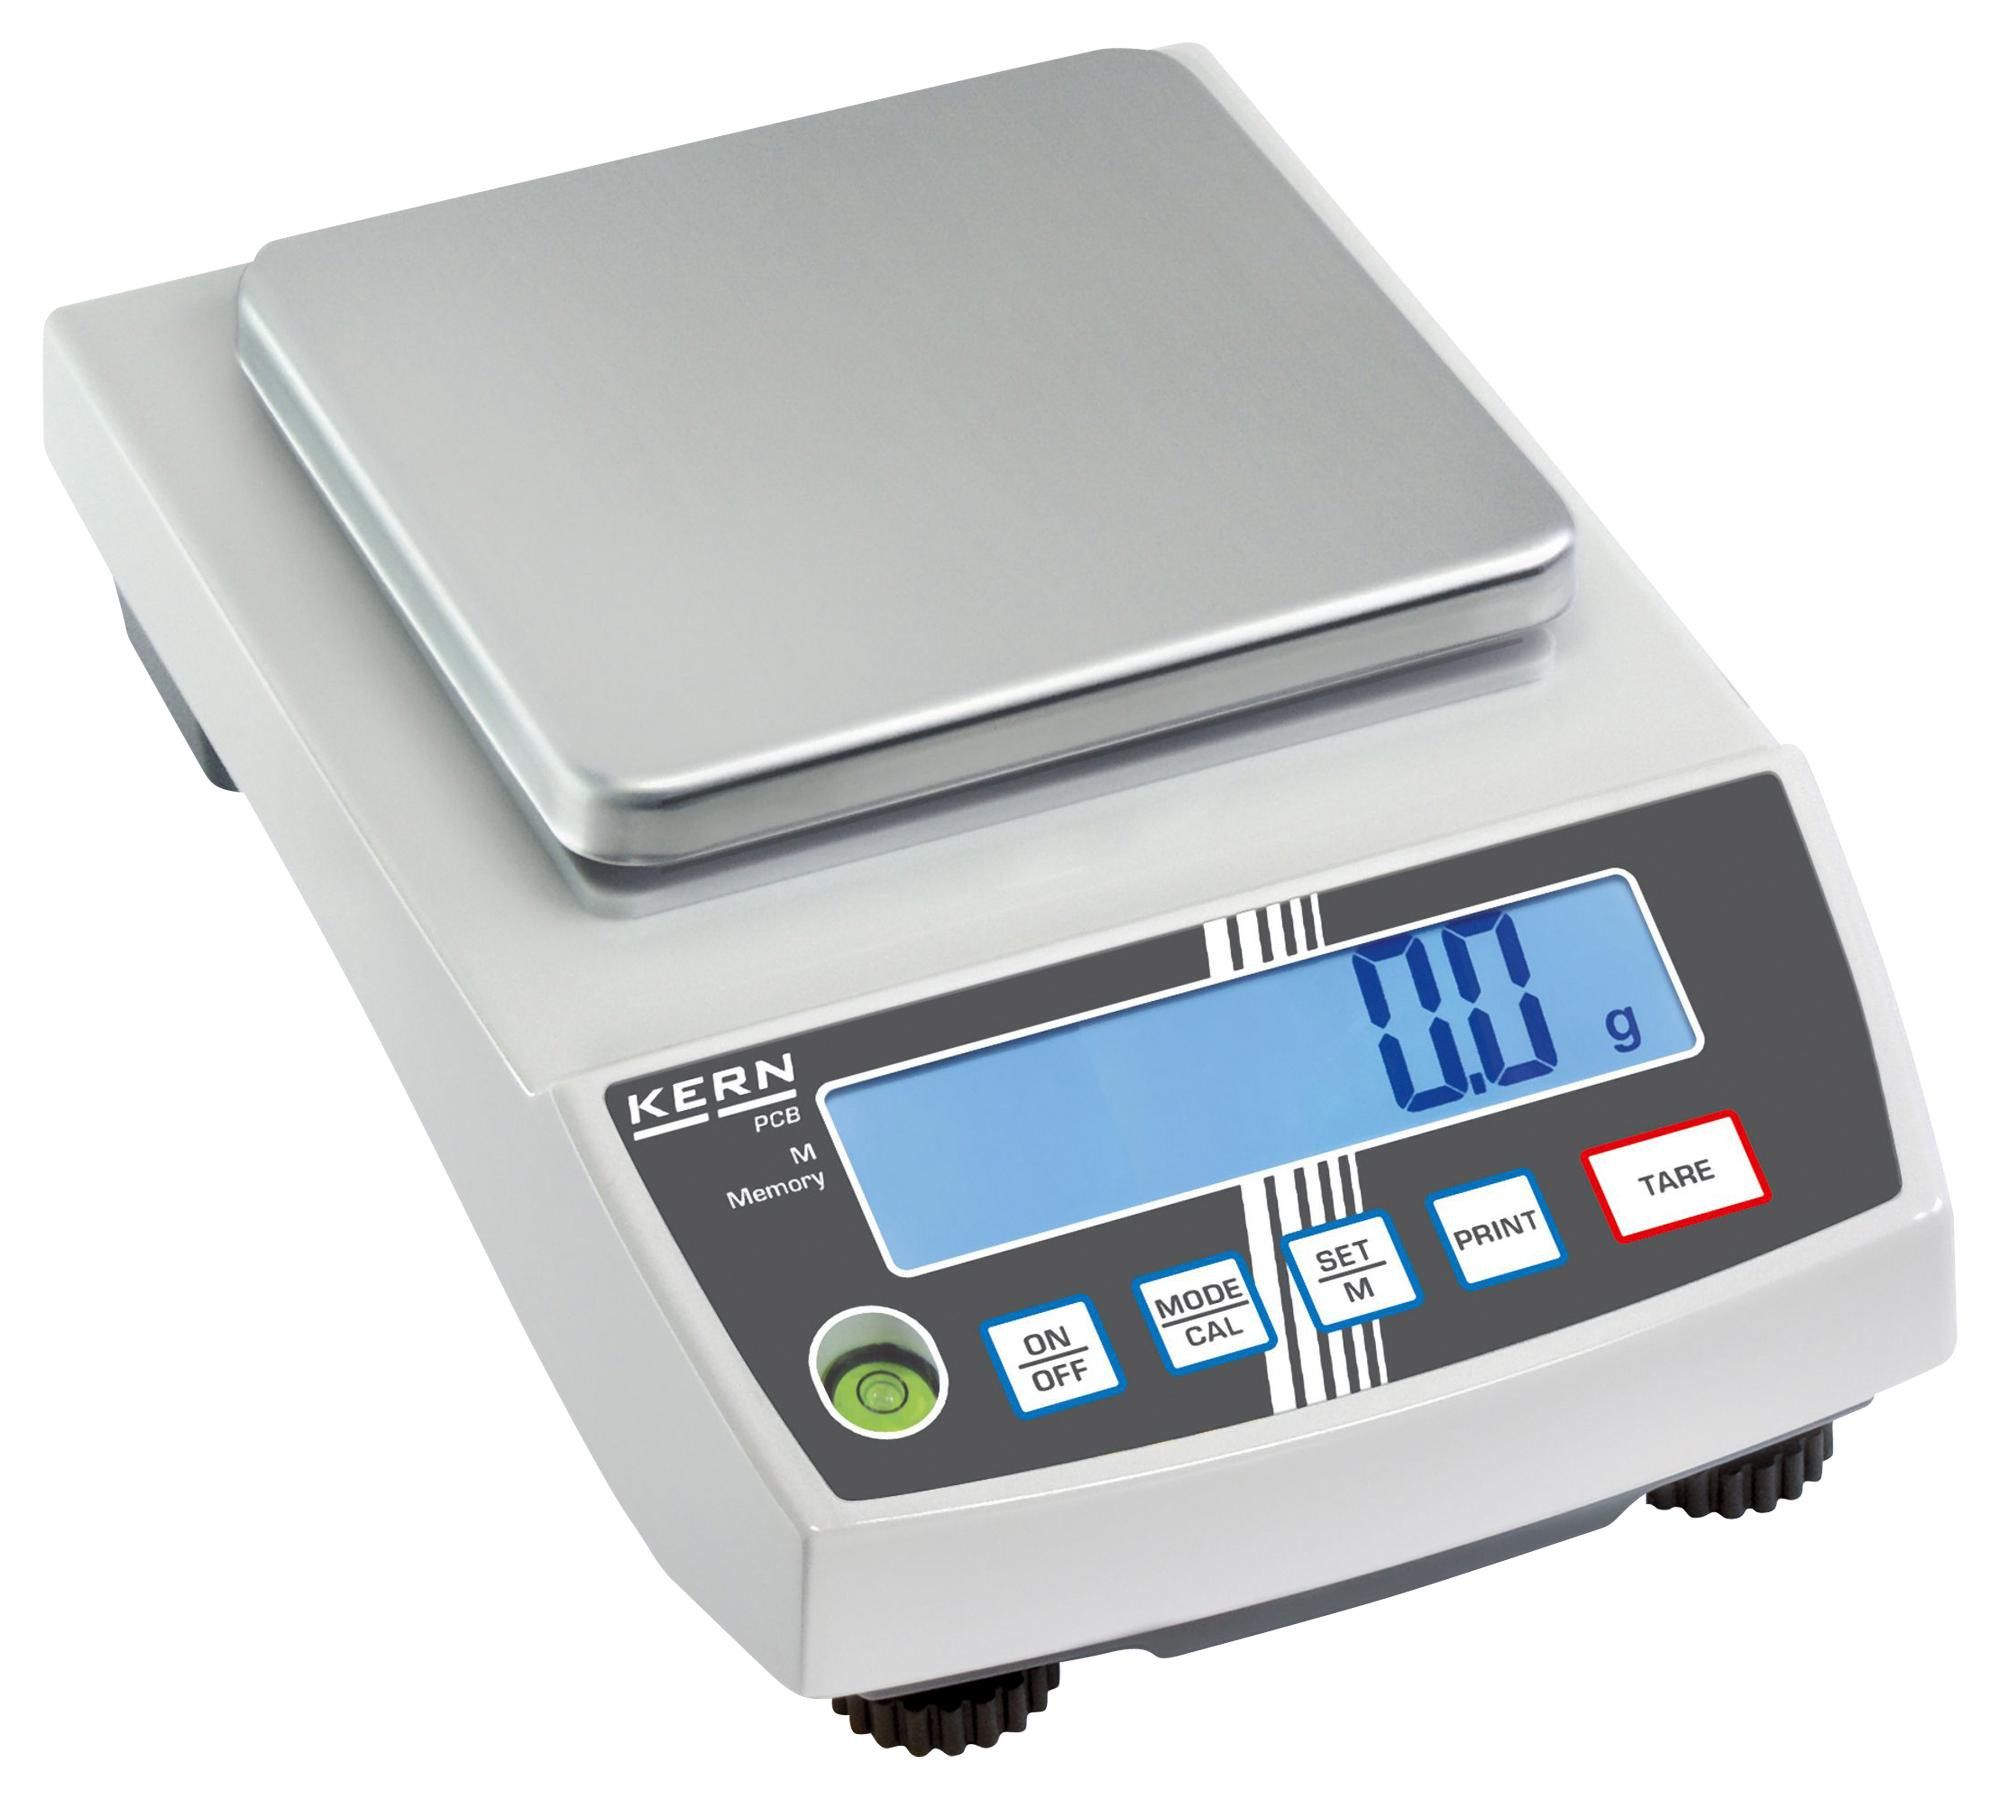 Pcb 2 Kern Weighing Scale Precision Digital